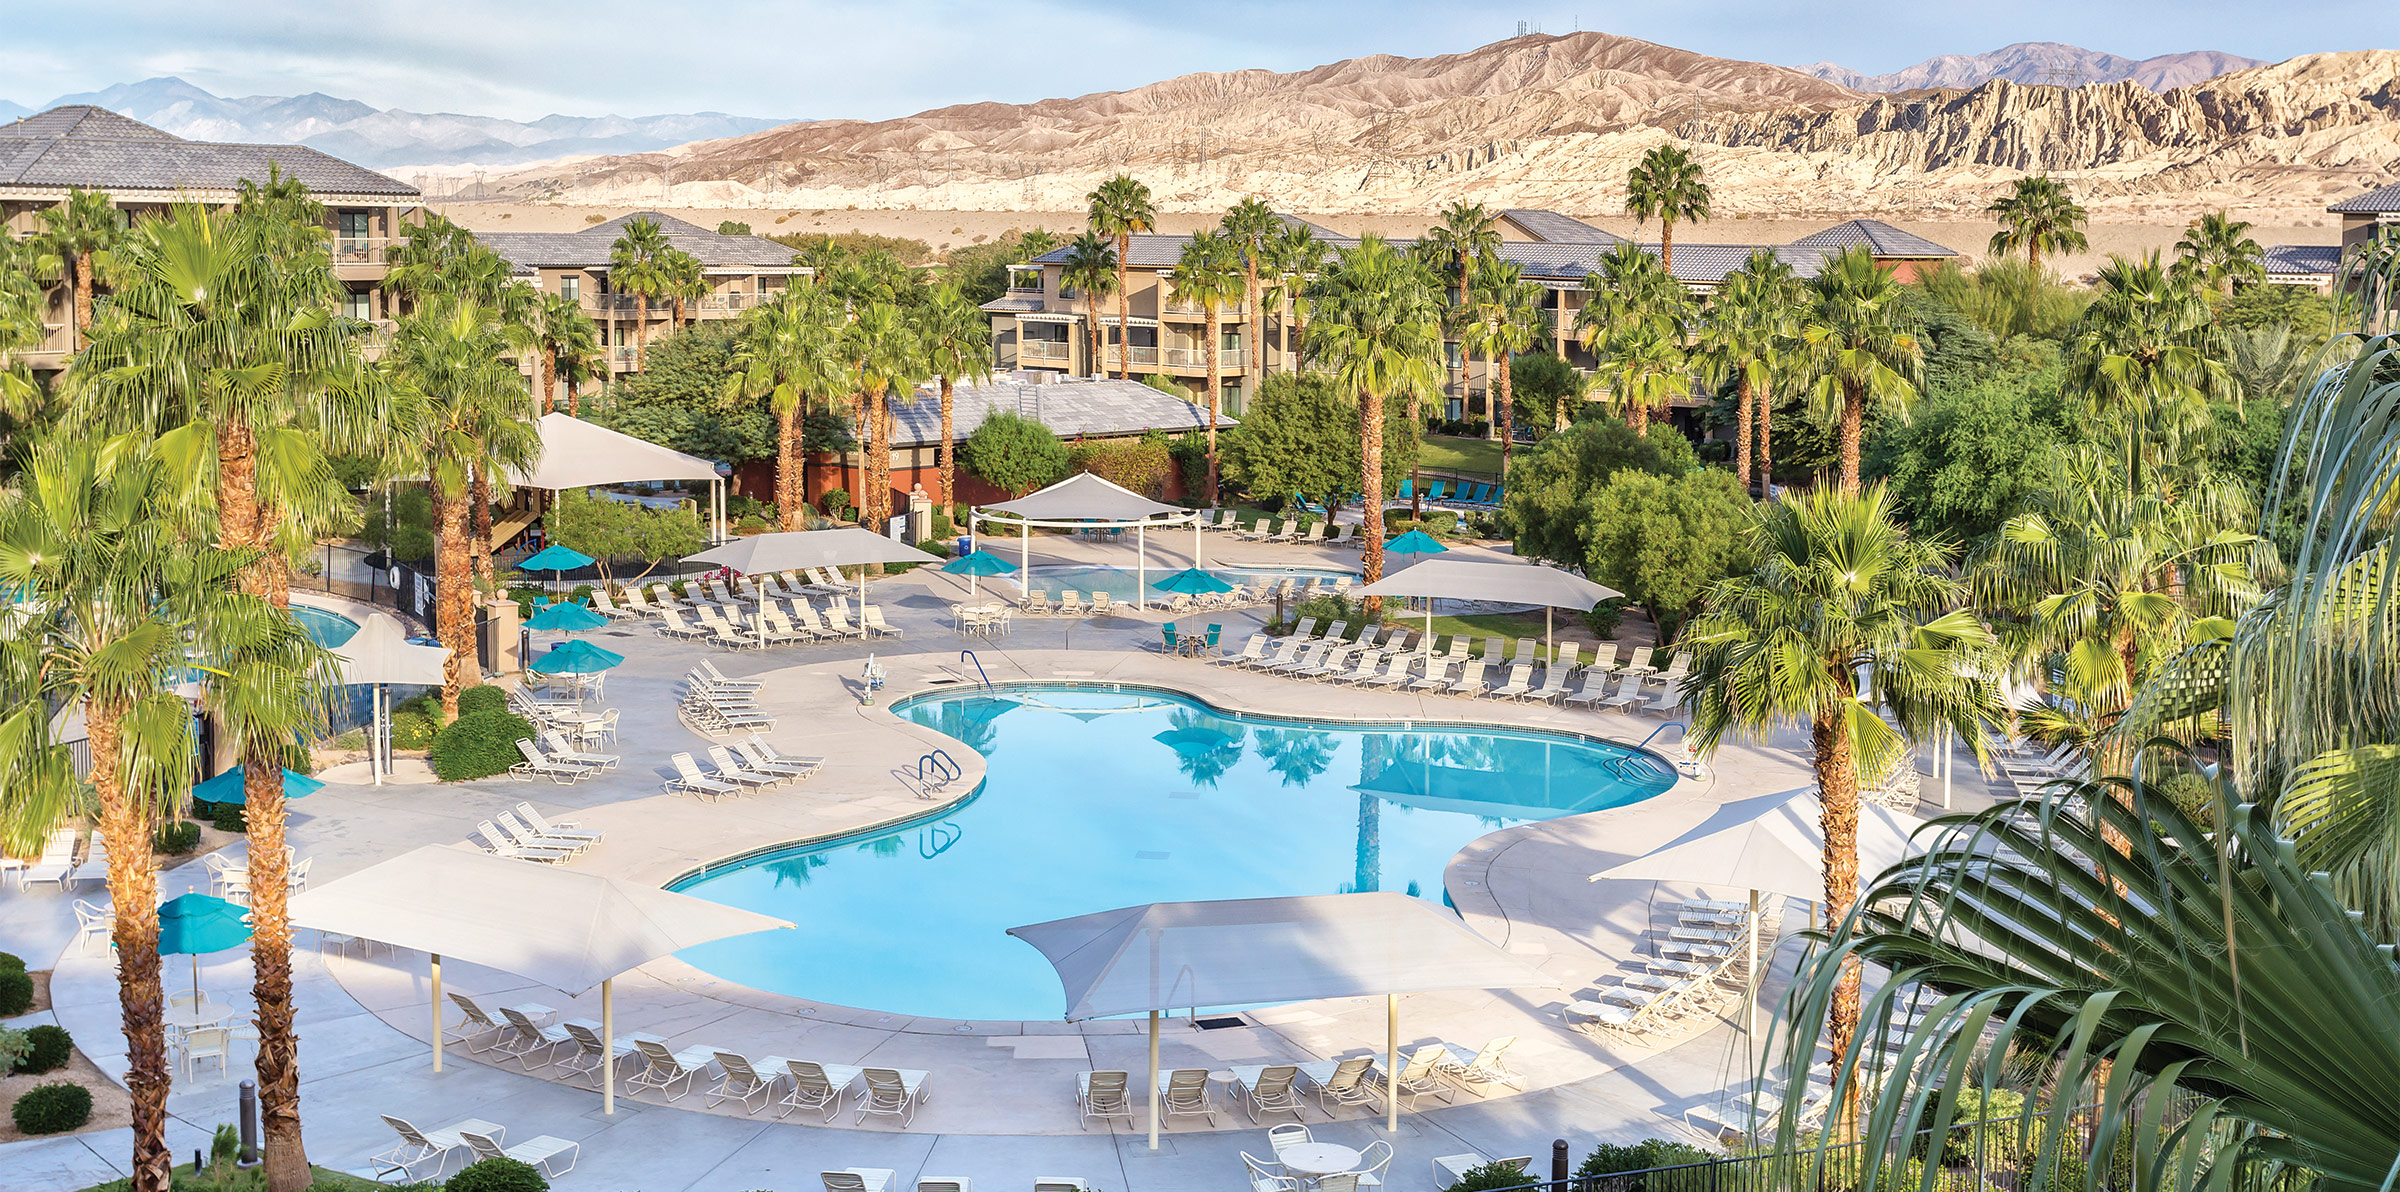 Apartment 1 Bedroom 1 Bath In Indio  CA   Palm Springs  5 miles from COACHELLA photo 18634809